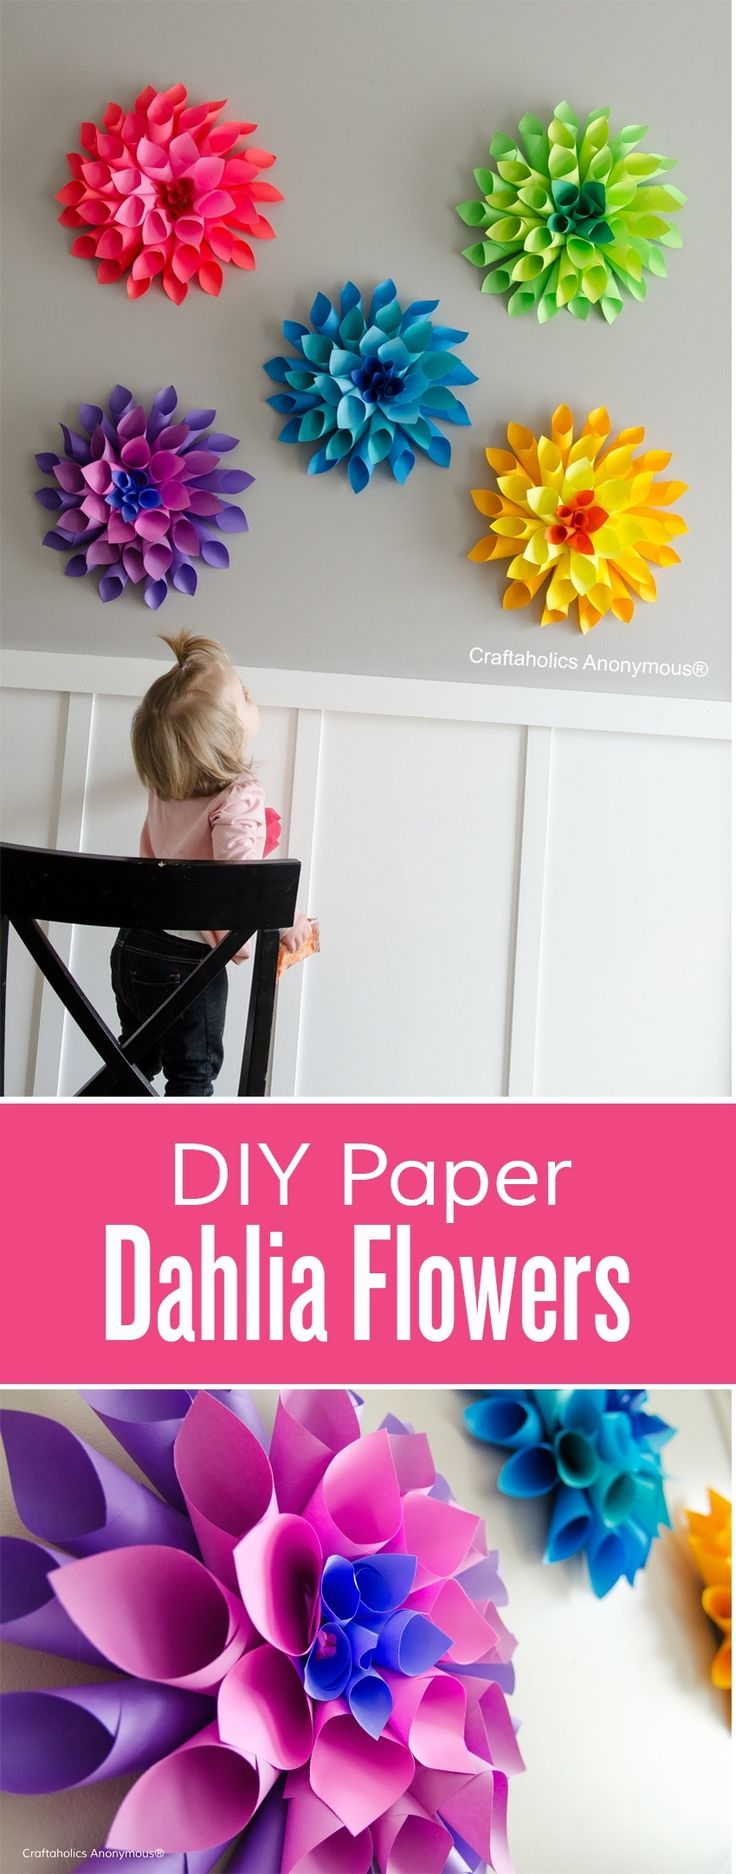 DIY Paper Dahlia Fowers Collage